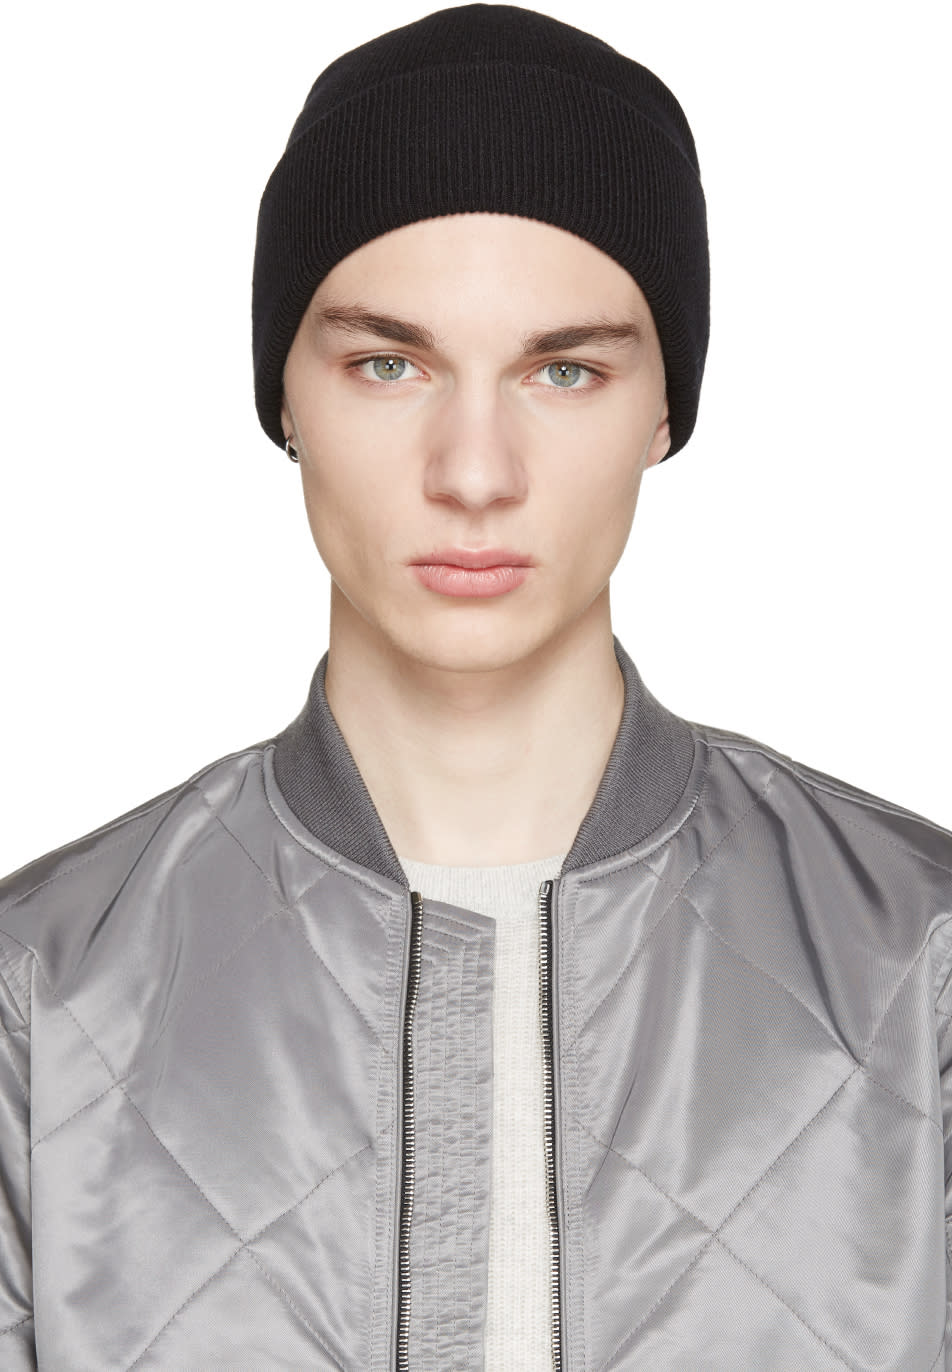 Rag and Bone Black Standard Issue Beanie